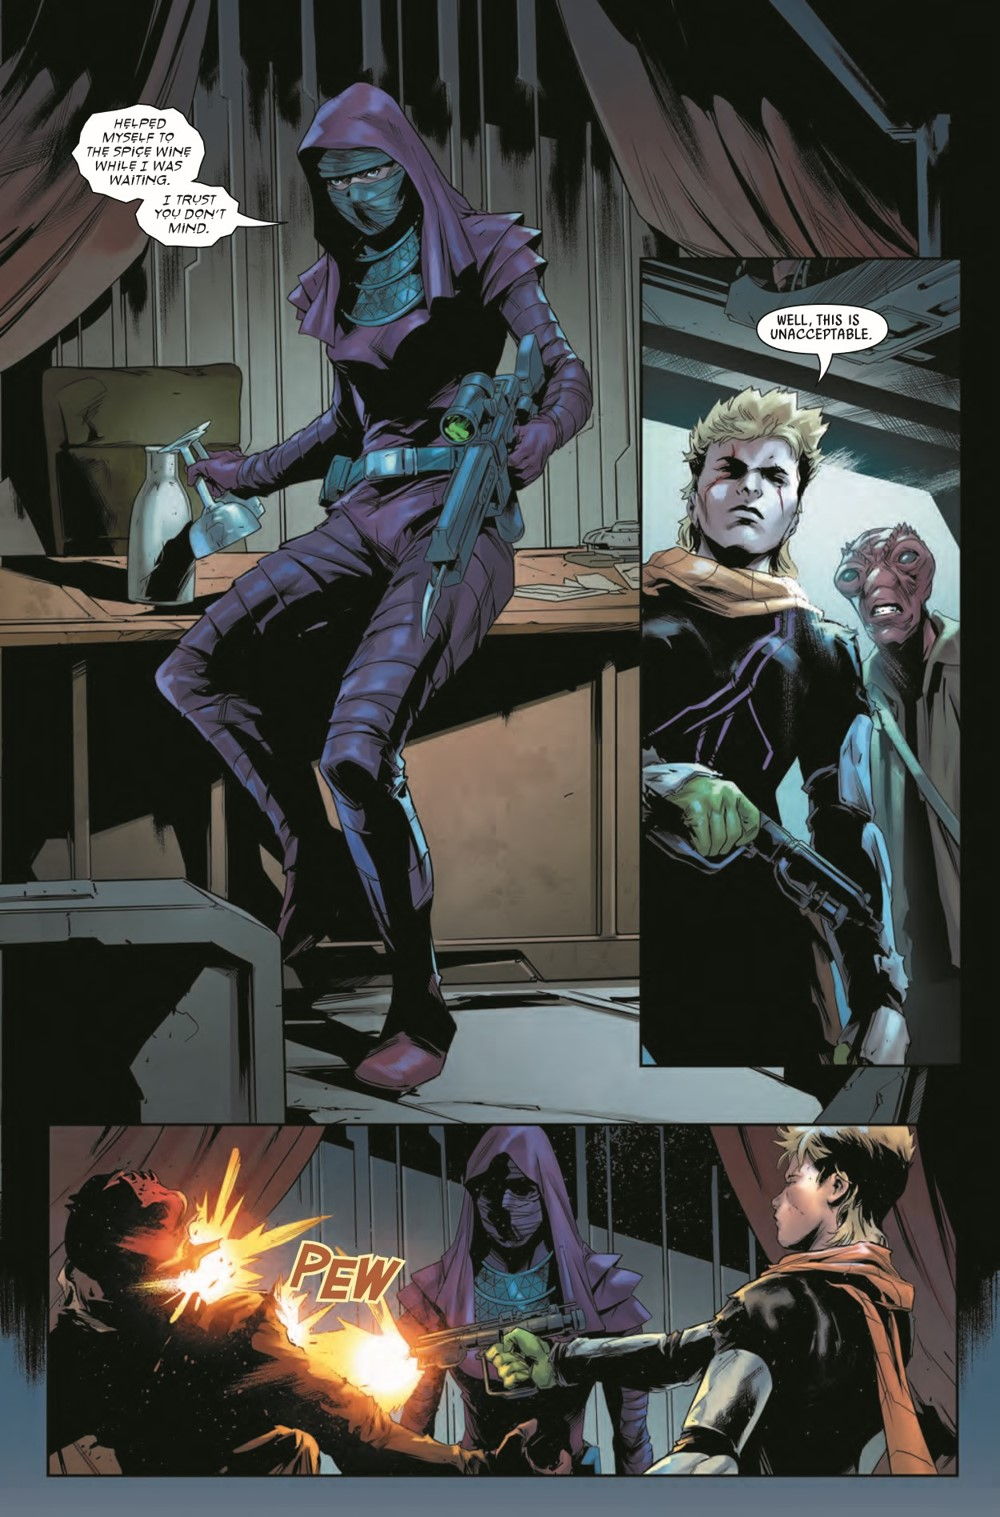 STWBOUNTYHUNT2020015_Preview-4 ComicList Previews: STAR WARS BOUNTY HUNTERS #15